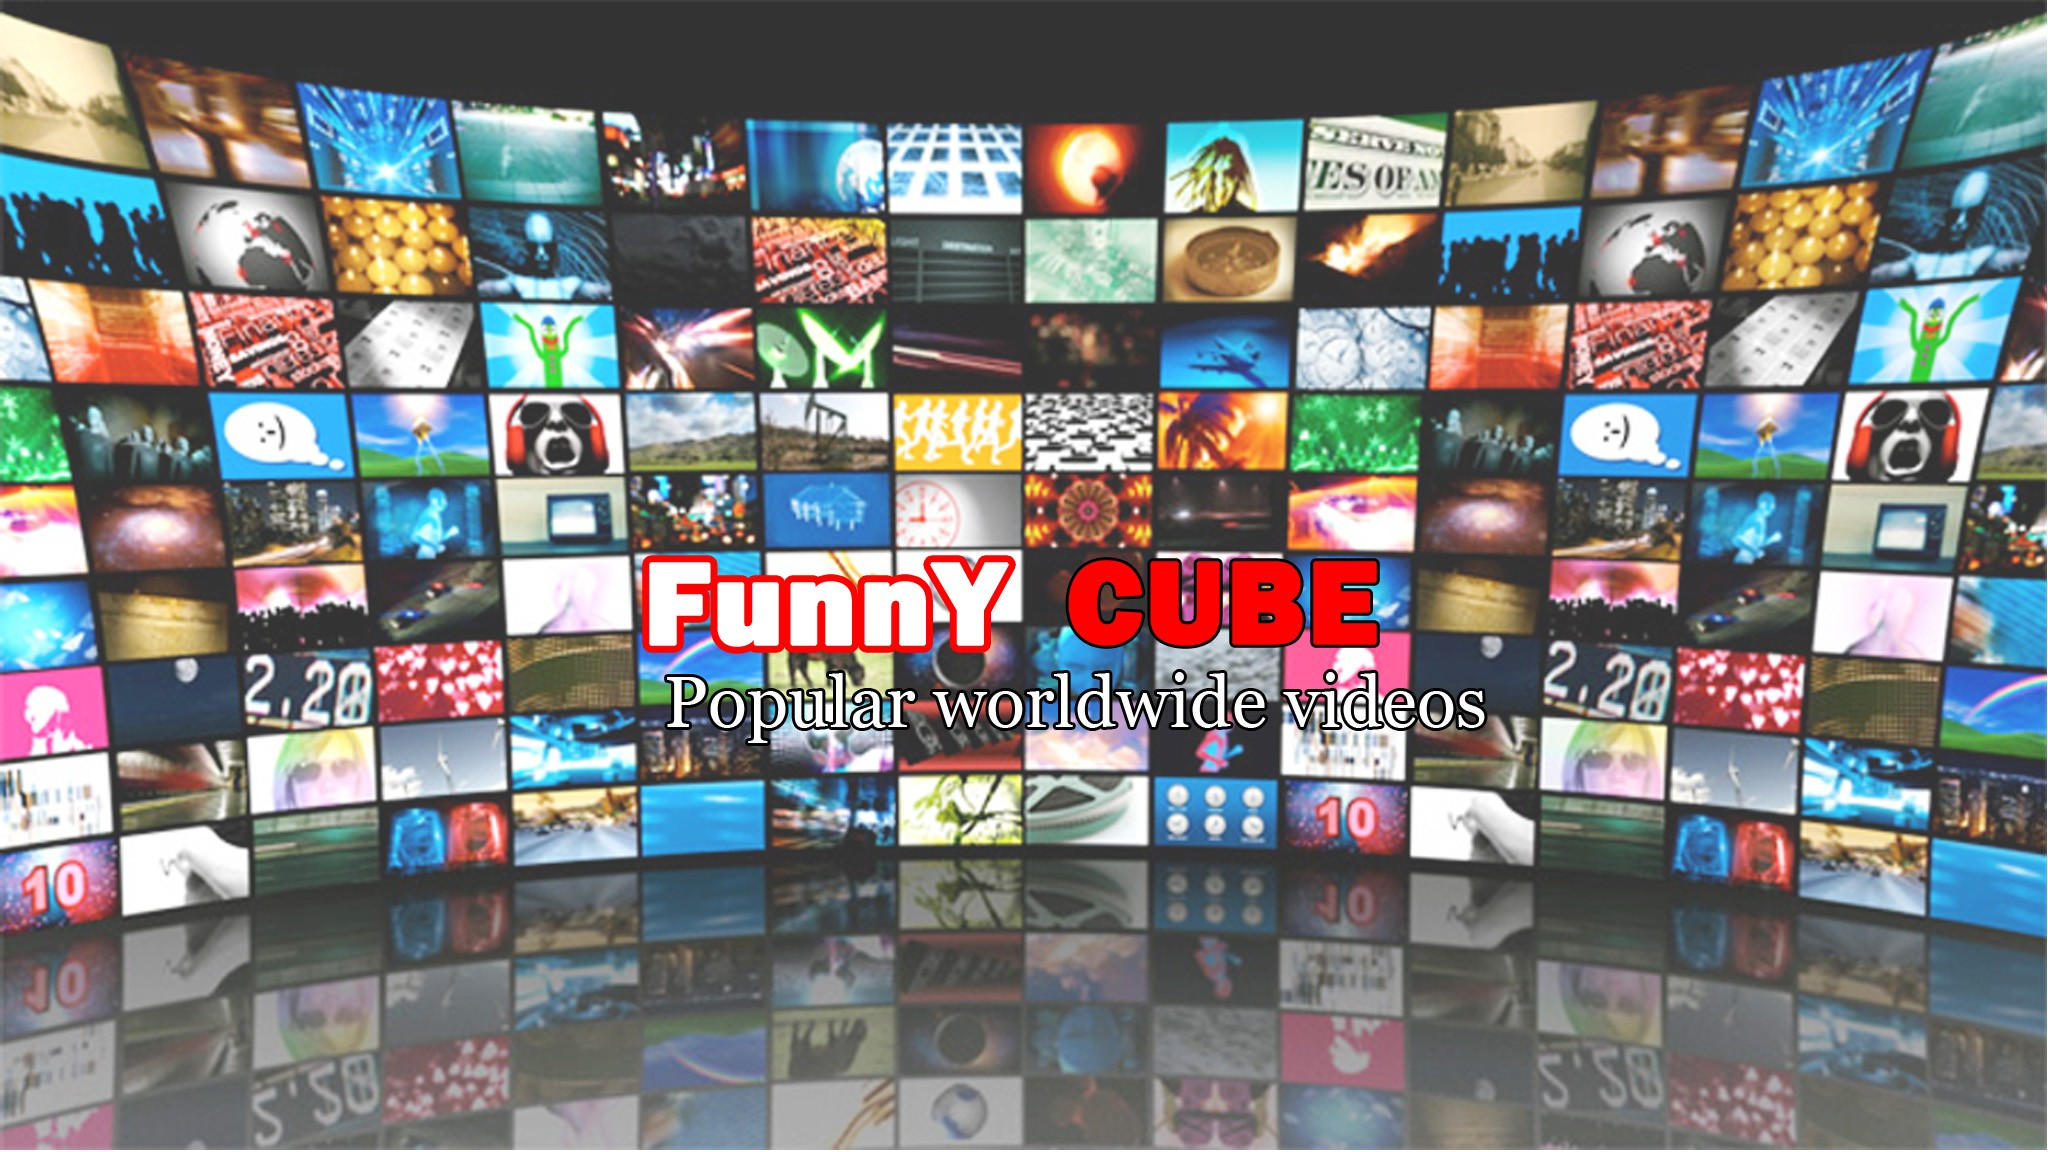 Funny Cube The Best Funny Video Collection From All Over